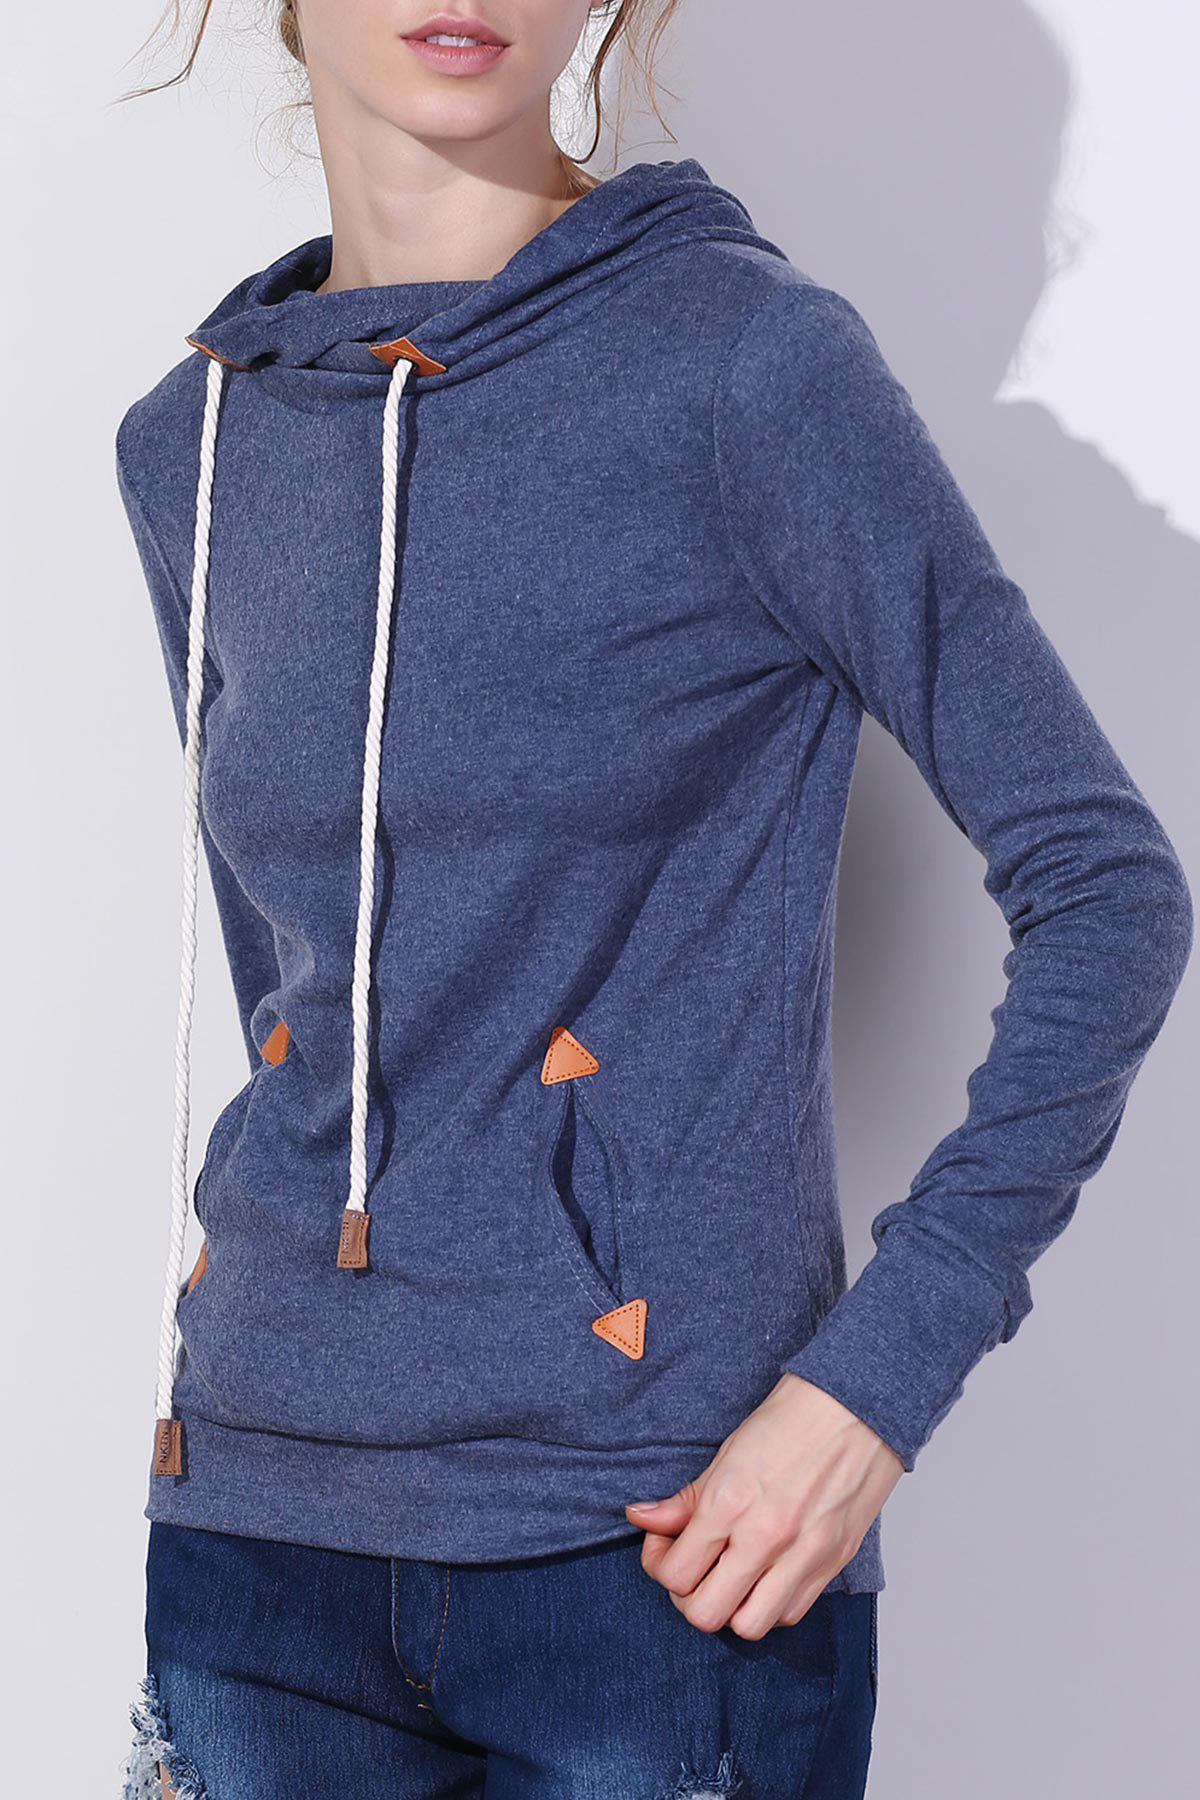 Stylish Hooded Long Sleeve Draped Spliced Womens HoodieWOMEN<br><br>Size: M; Color: BLUE; Material: Polyester; Shirt Length: Regular; Sleeve Length: Full; Style: Fashion; Pattern Style: Patchwork; Weight: 0.365kg; Package Contents: 1 x Hoodie;